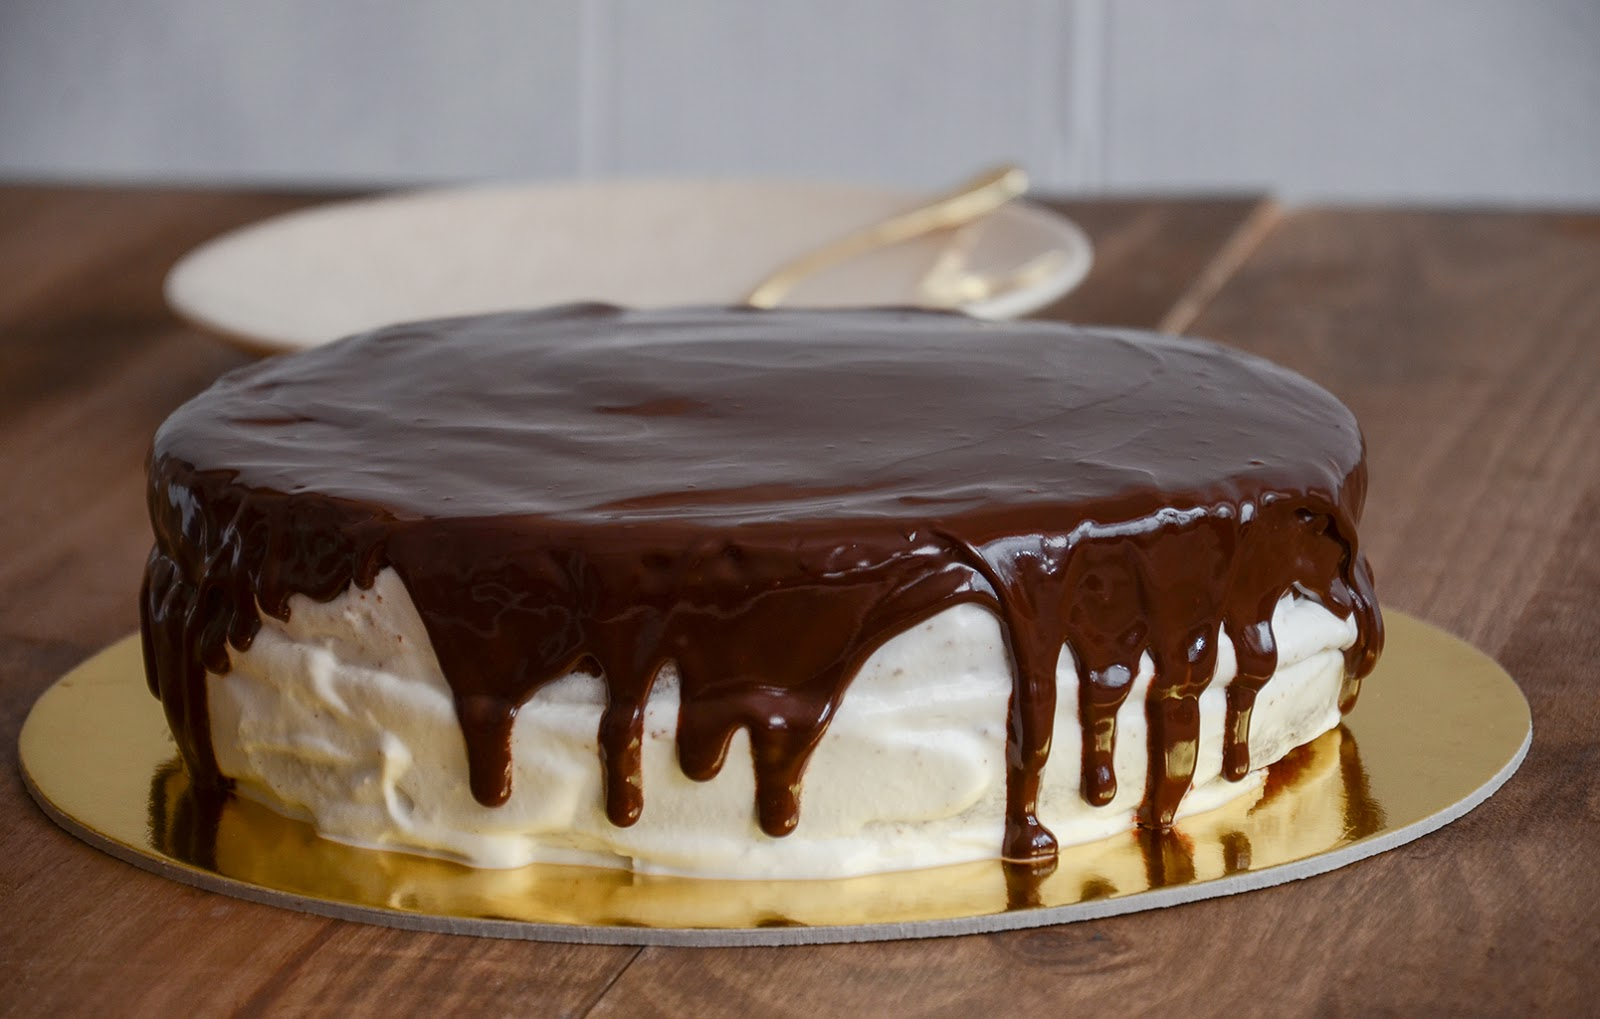 Image result for Bolo de Baunilha com chantilly e chocolate